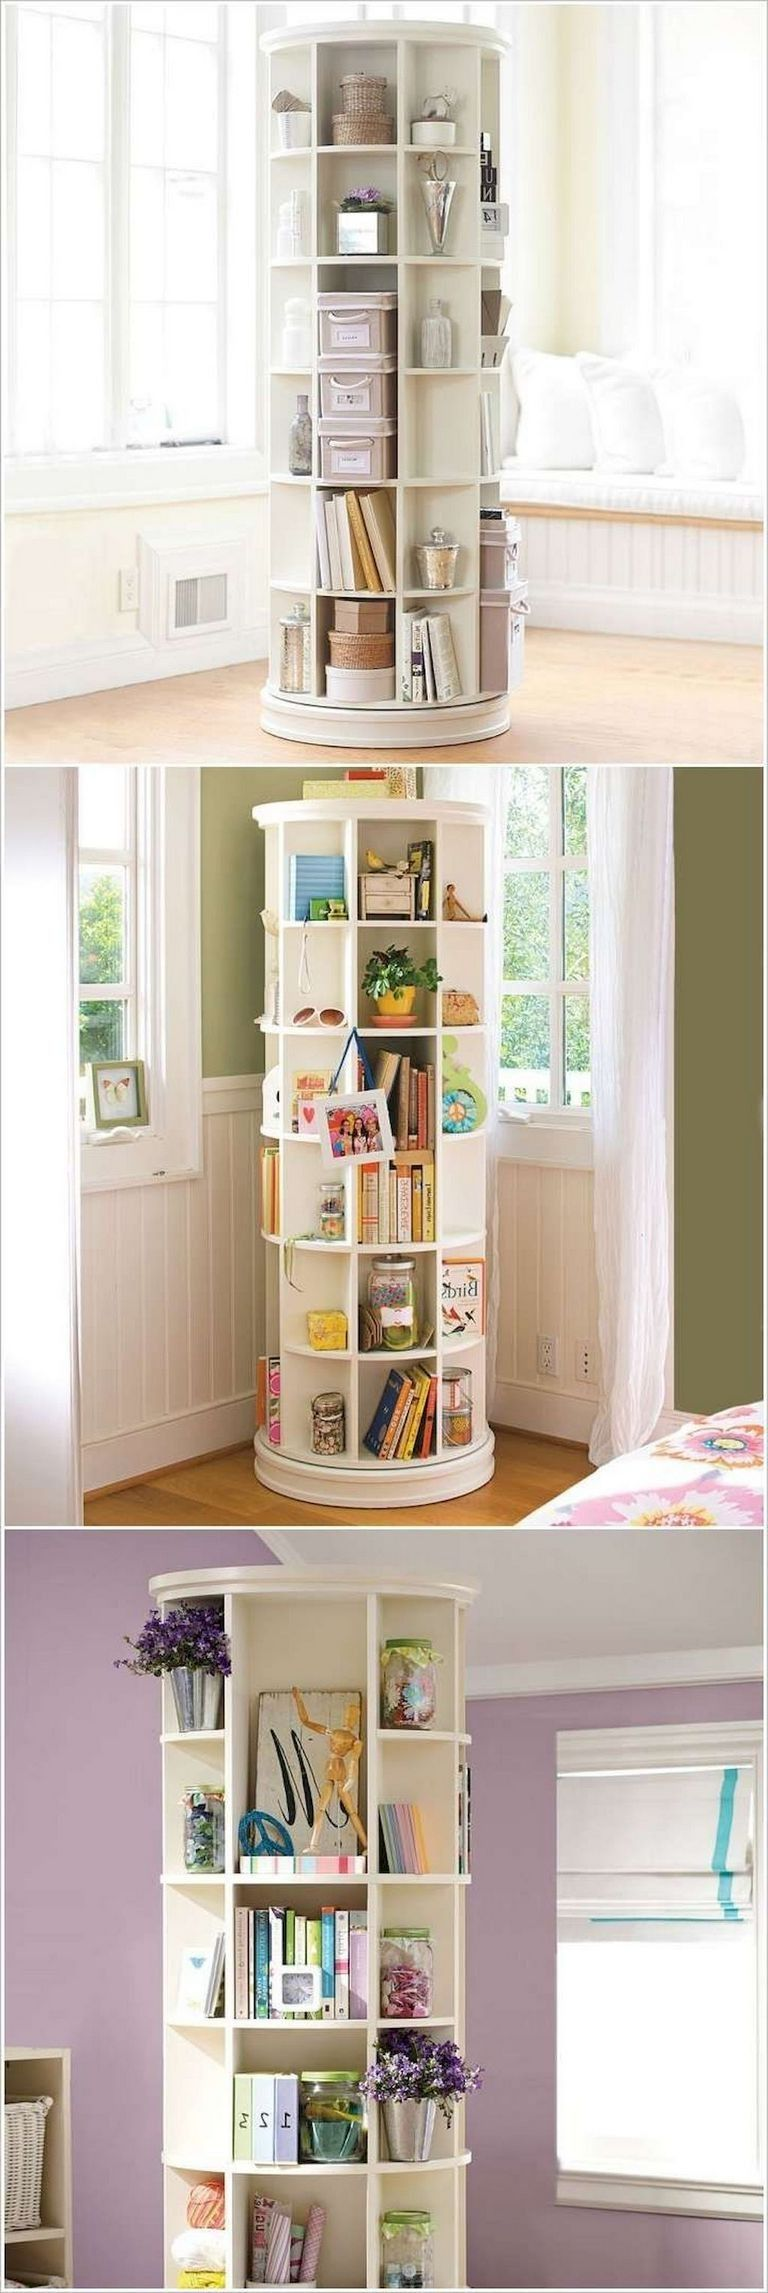 Space Saving Teens Bedroom Furniture: 28+ Clever Organization Space Saving Decor Ideas For Any